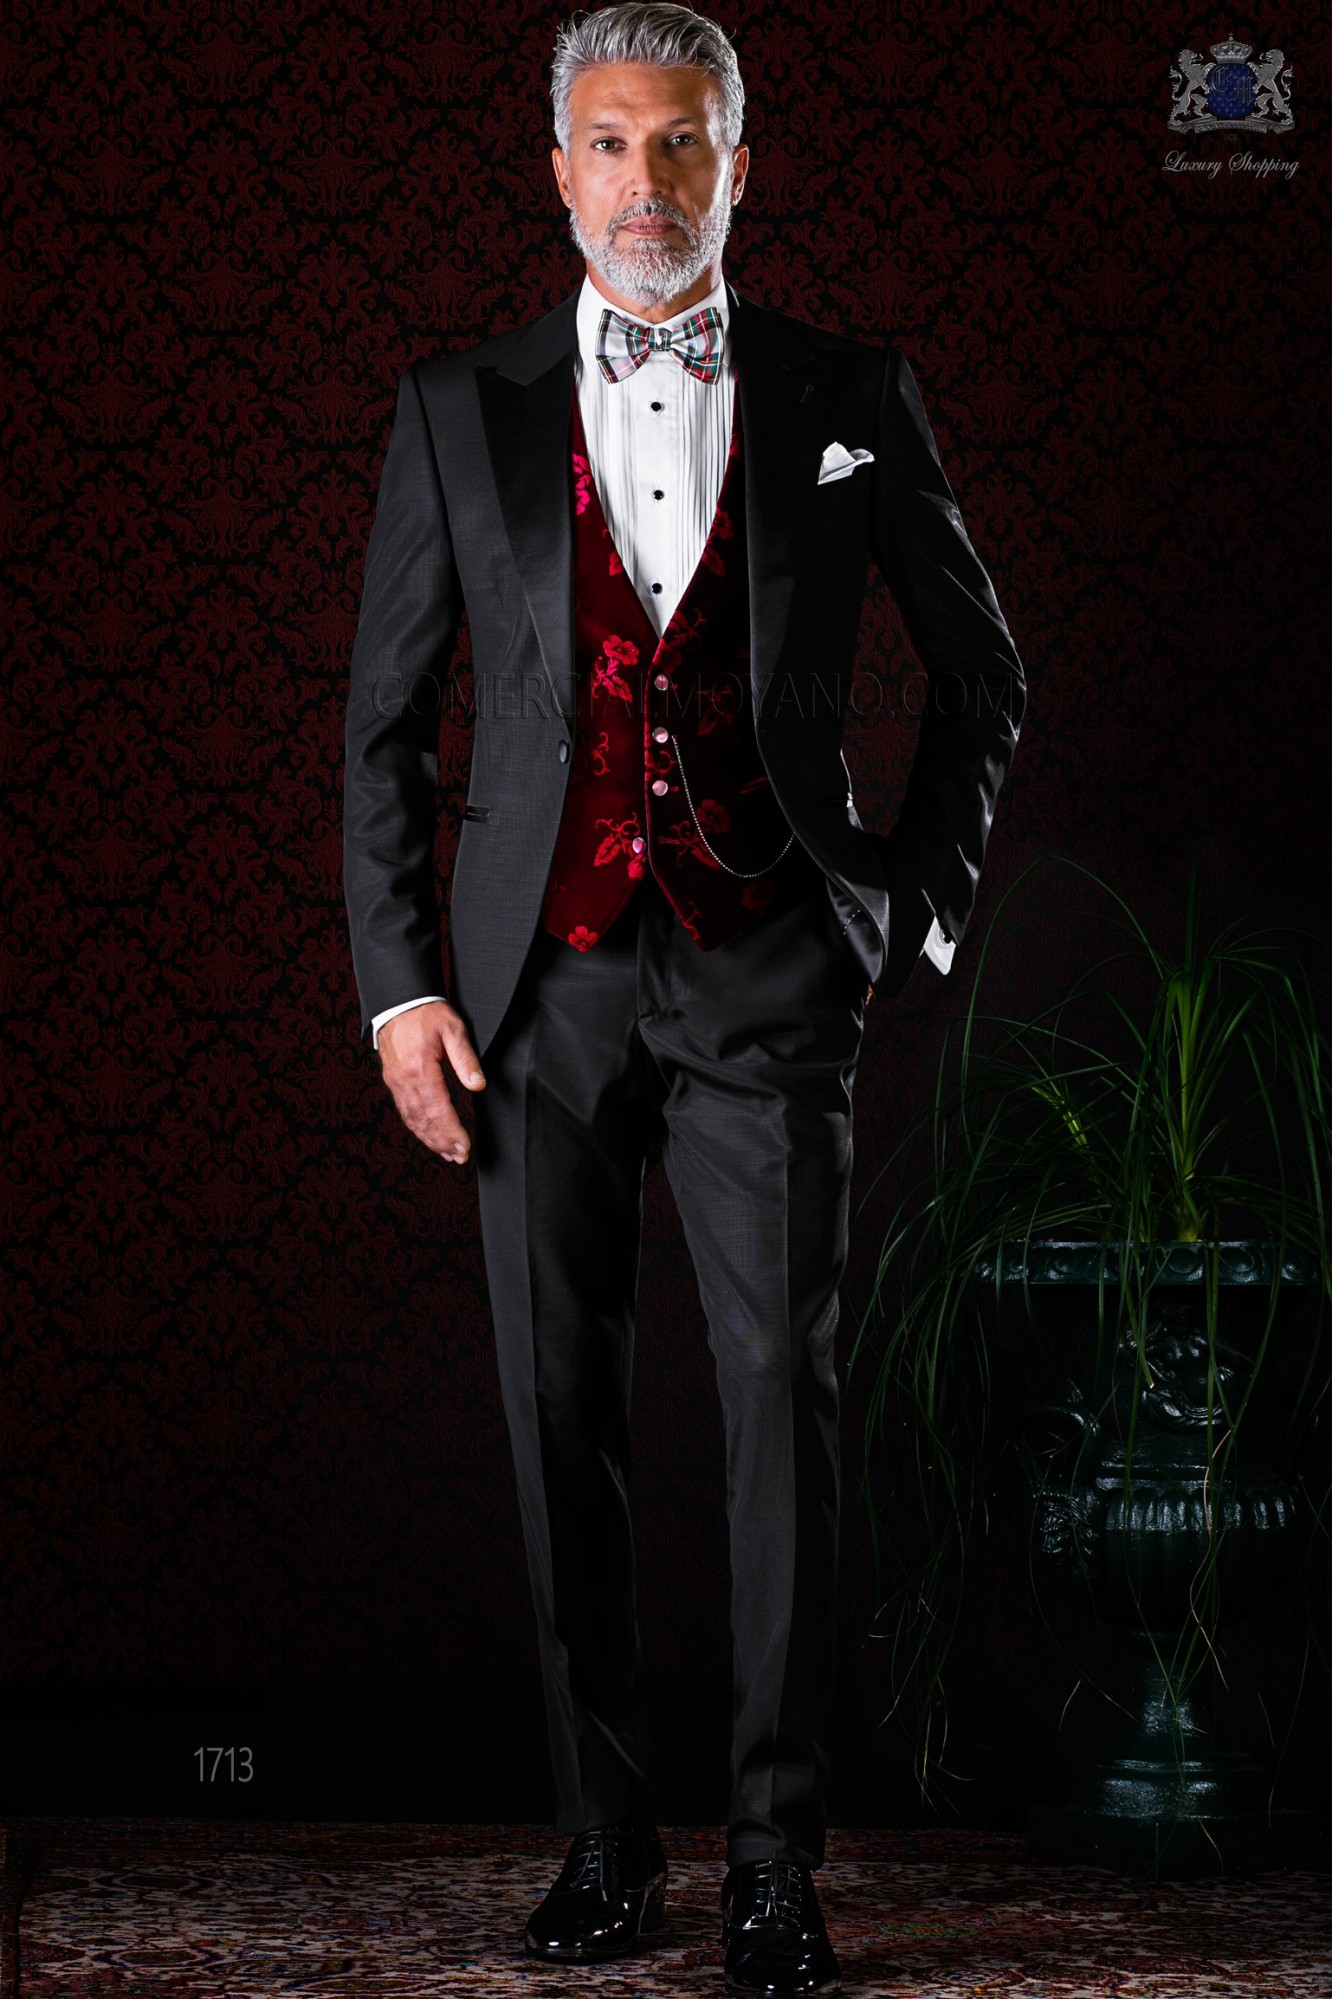 Italian bespoke black tuxedo with peak satin lapels and 1 button. Wool mix fabric model 1713 Ottavio Nuccio Gala